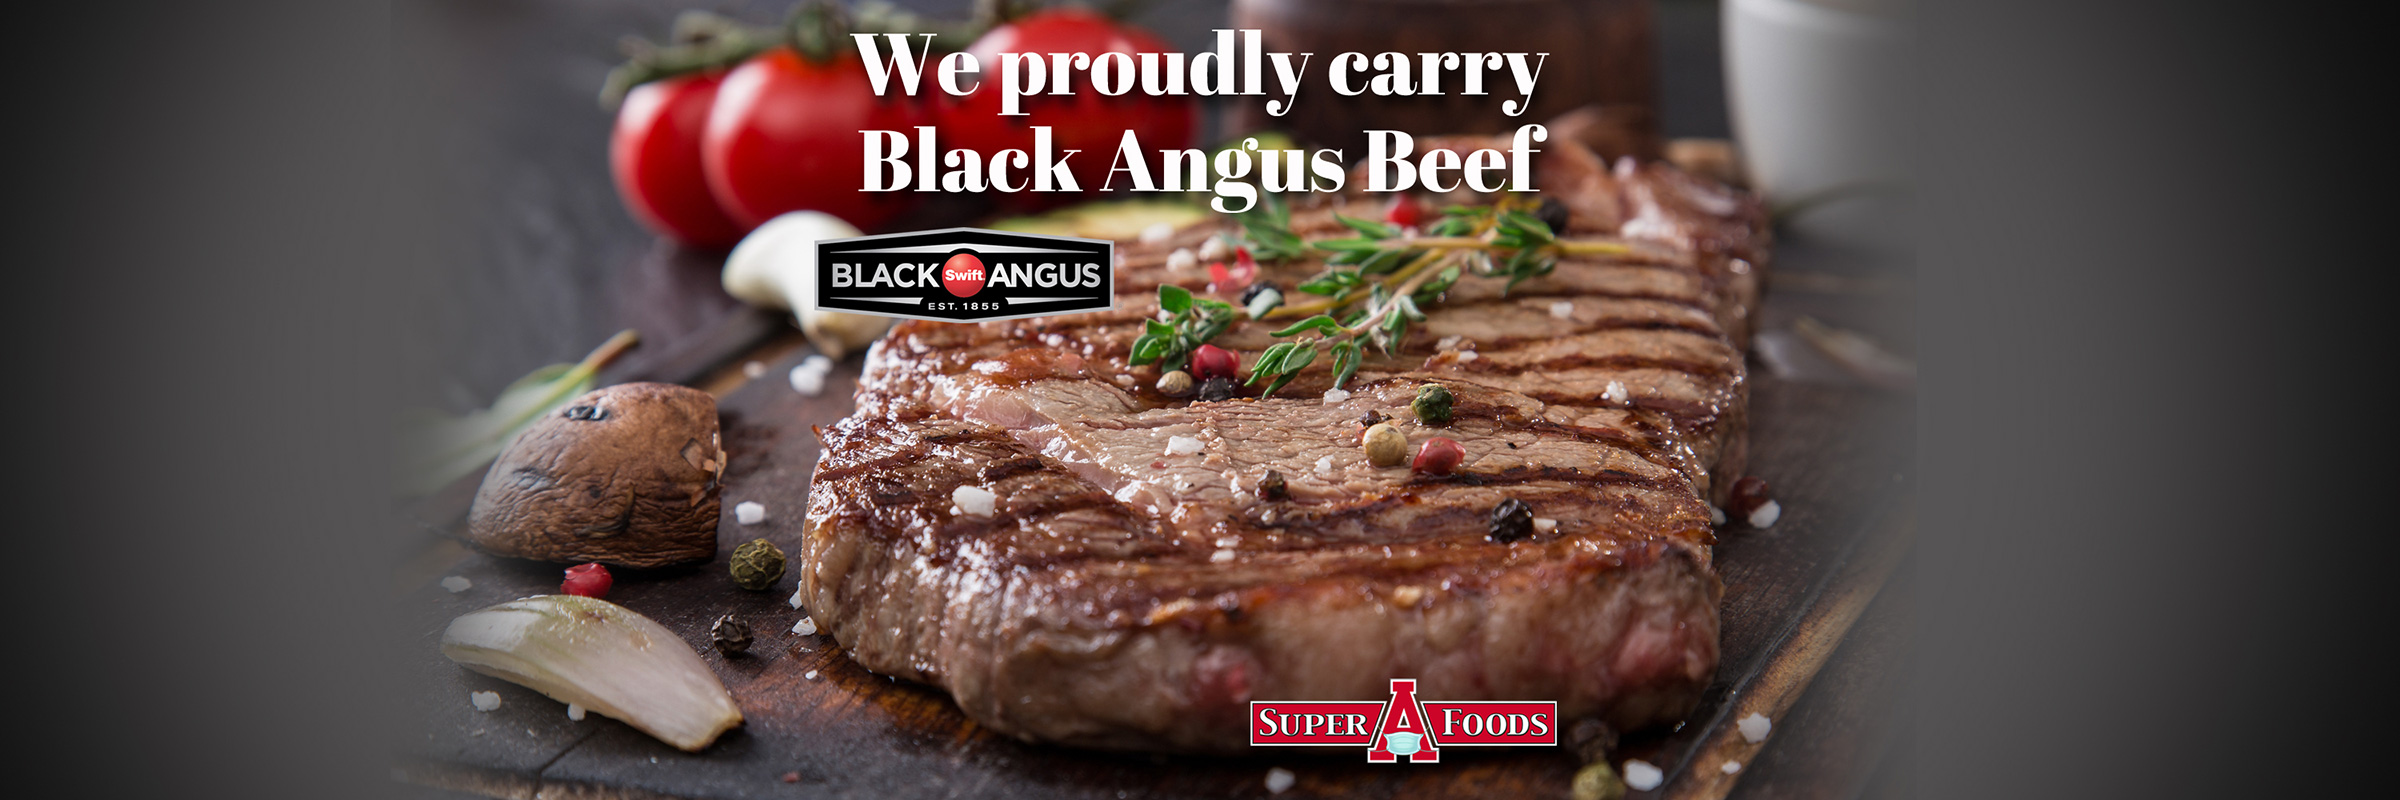 We proudly carry Black Angus Beef